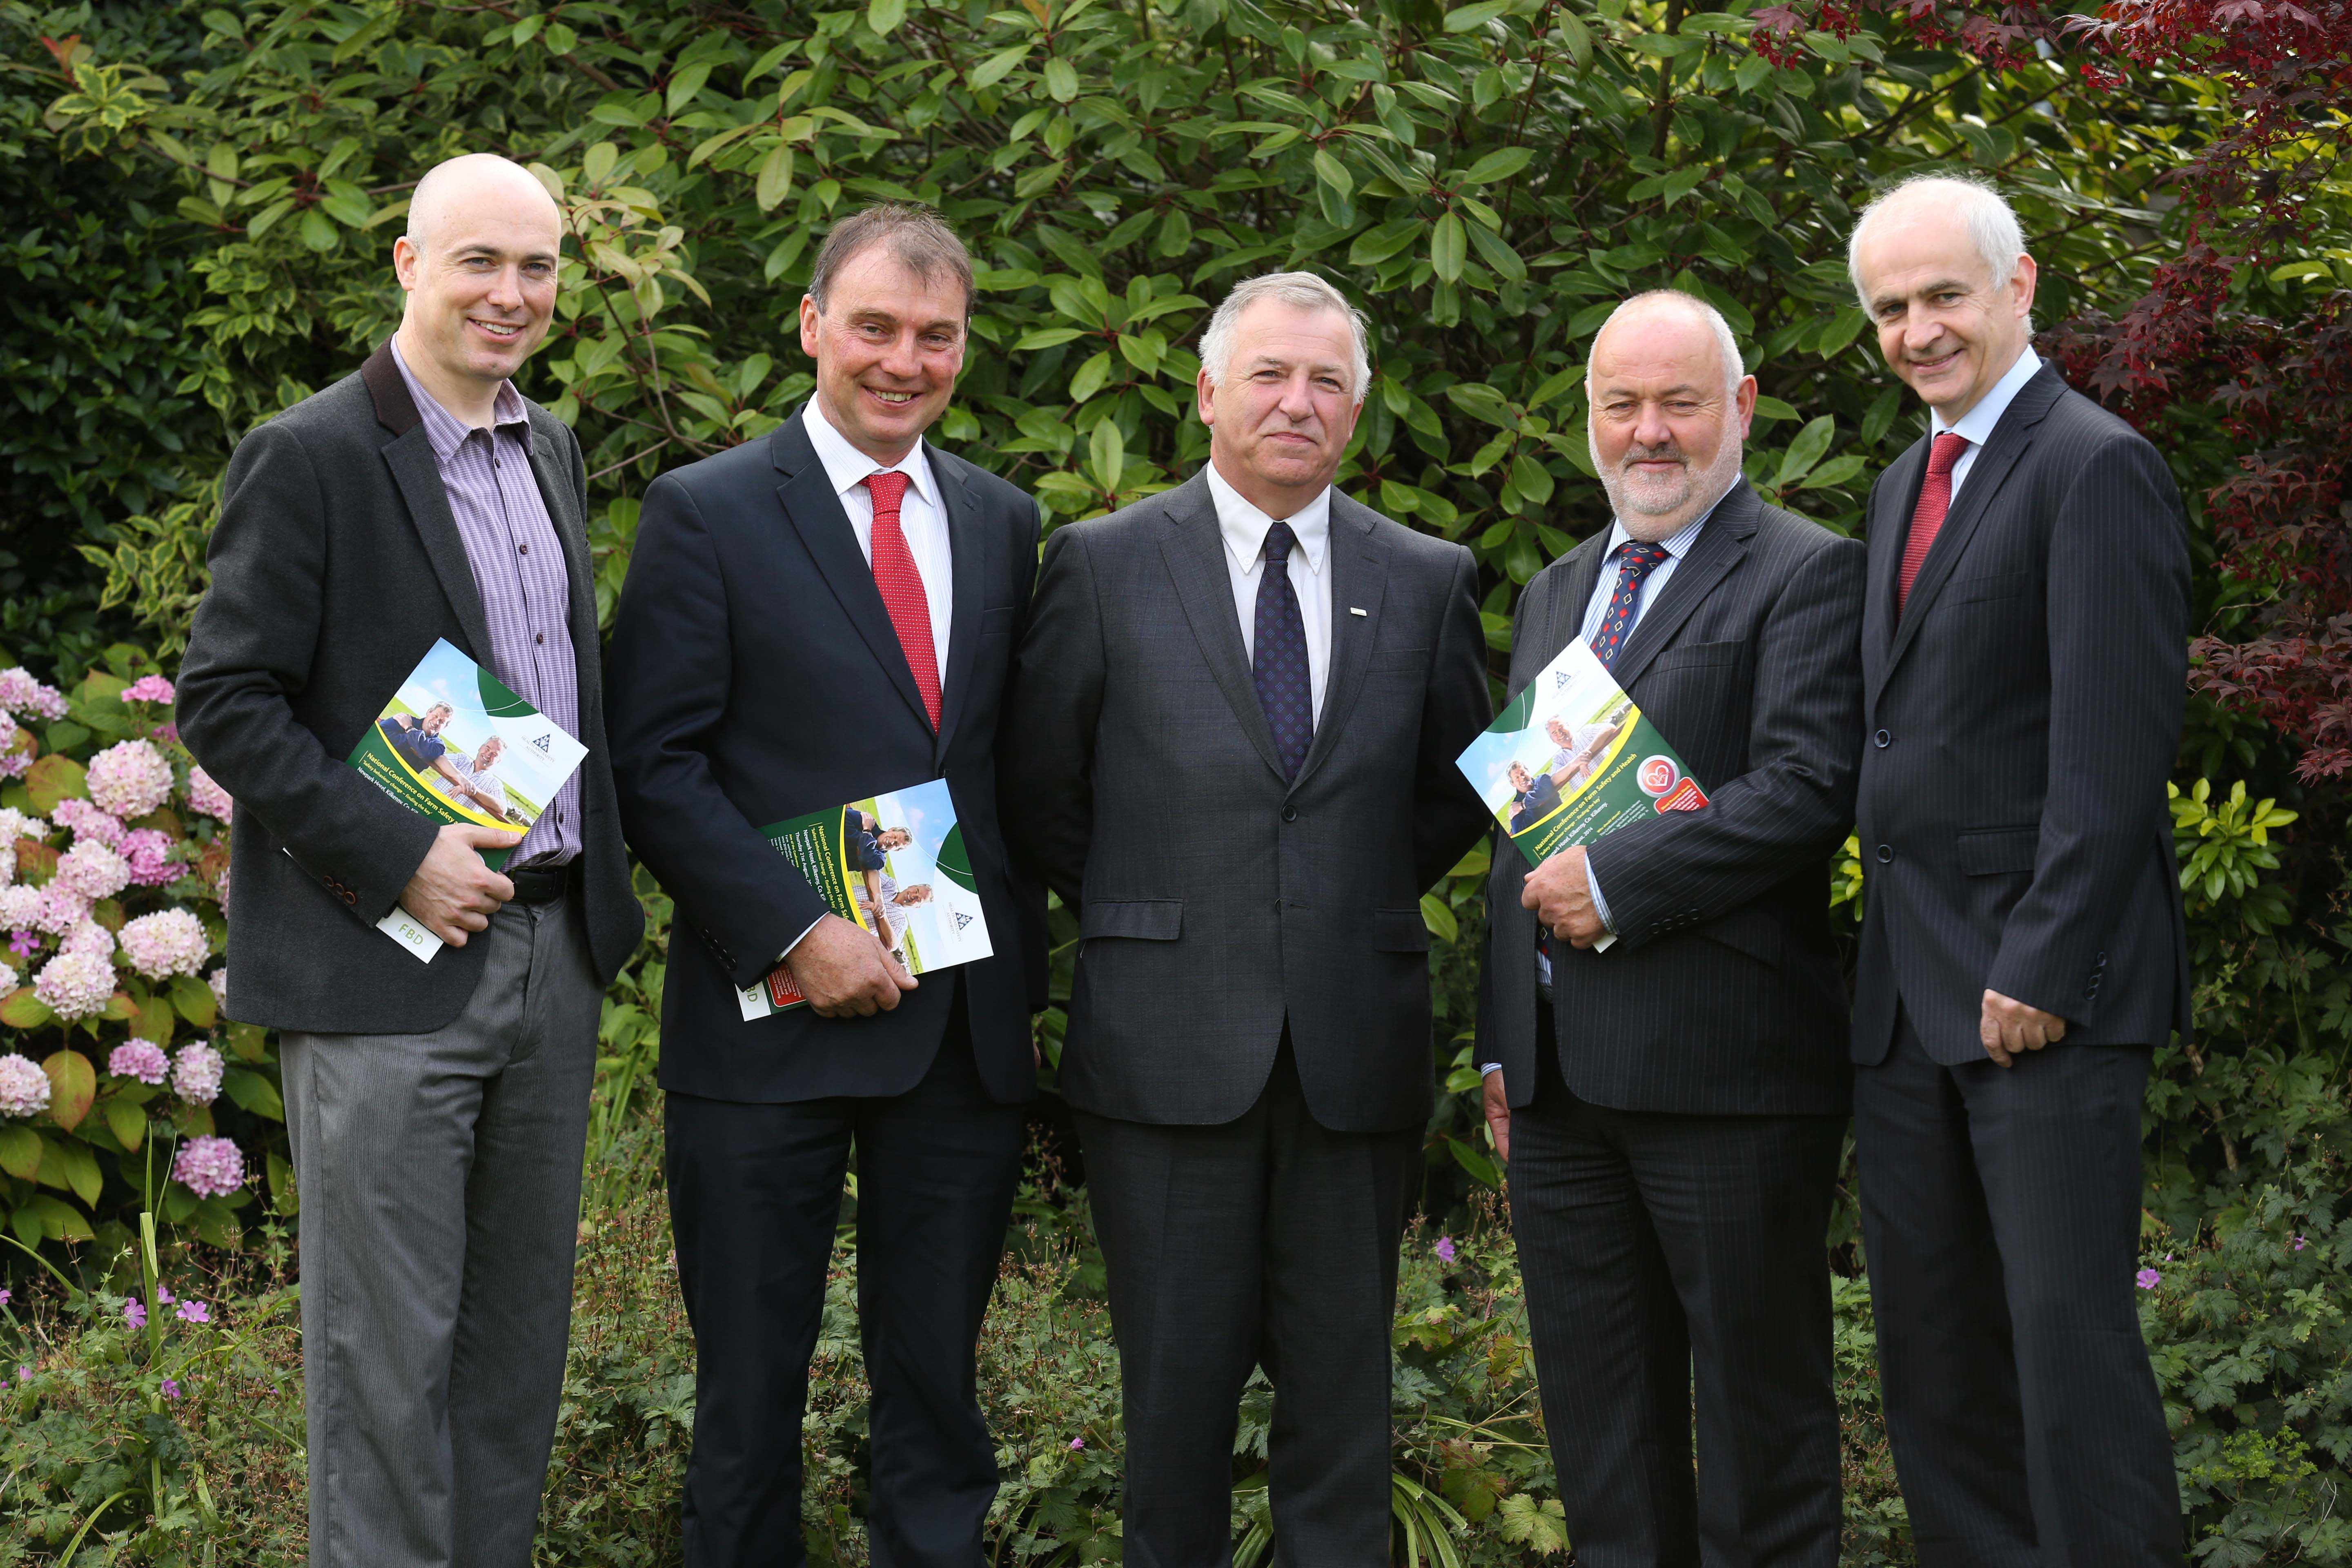 Pictured at the National conference on farm safety and health in Kilkenny, Dr Denis O'Hora NUI Galway, John Comer ICMSA, Gerry Boyle, Director of Teagasc, Martin O'Halloran HSA CEO and Eddie Downey President IFA.